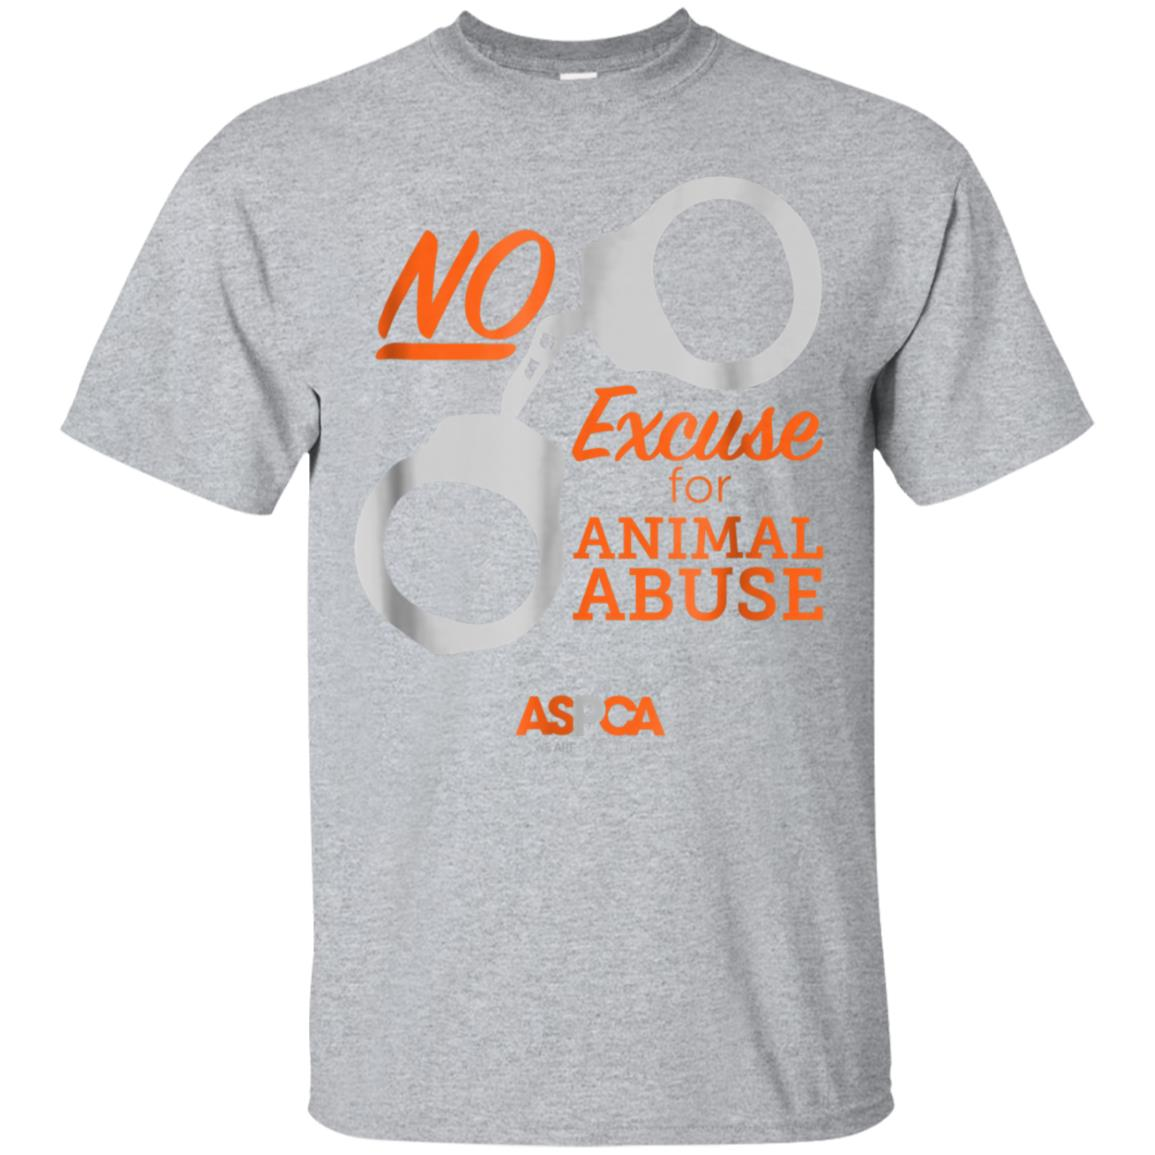 ASPCA No Excuse for Animal Abuse T-Shirt Light 99promocode